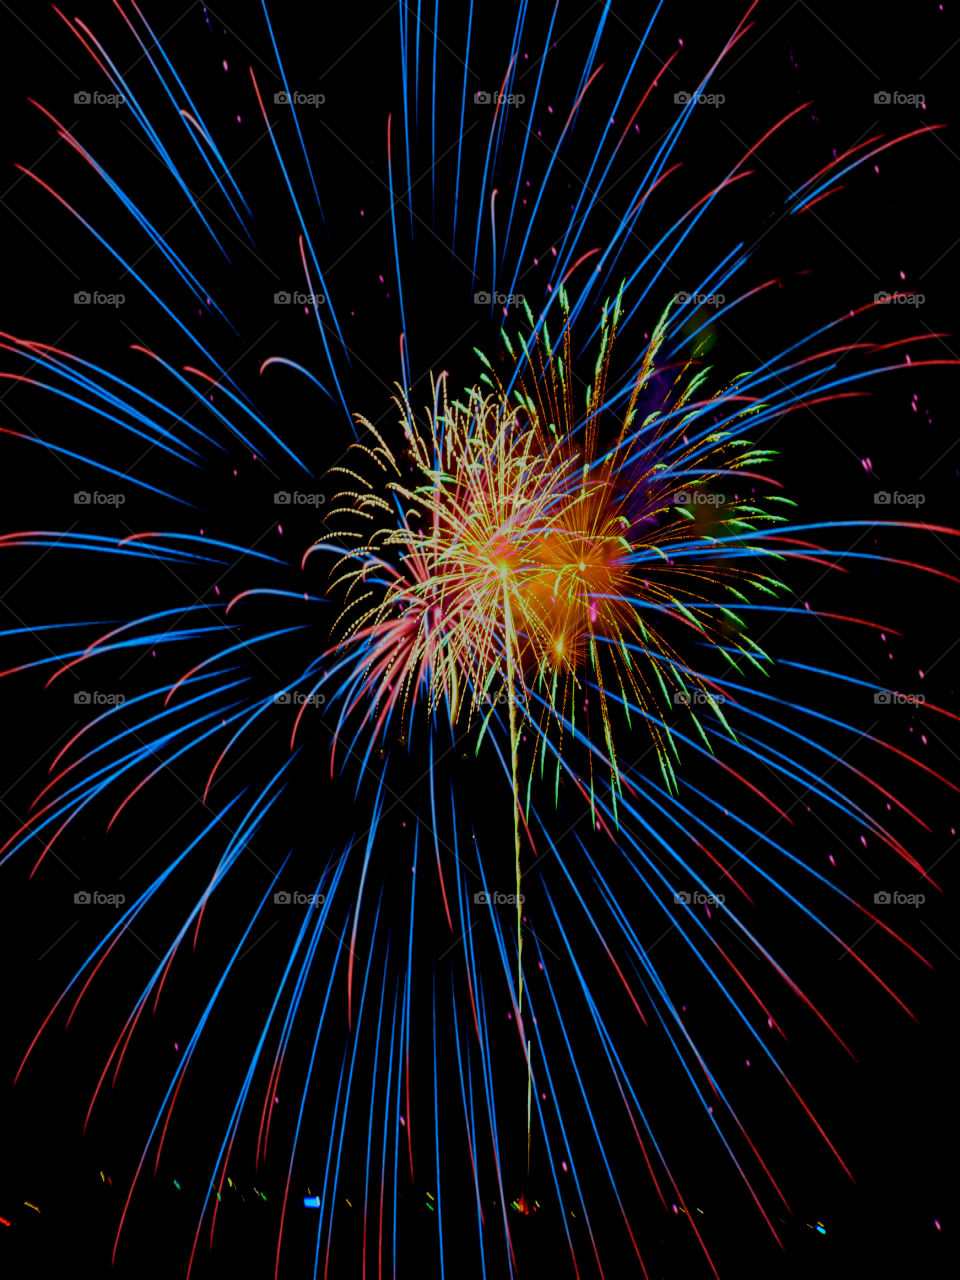 Low angle view of fireworks during night